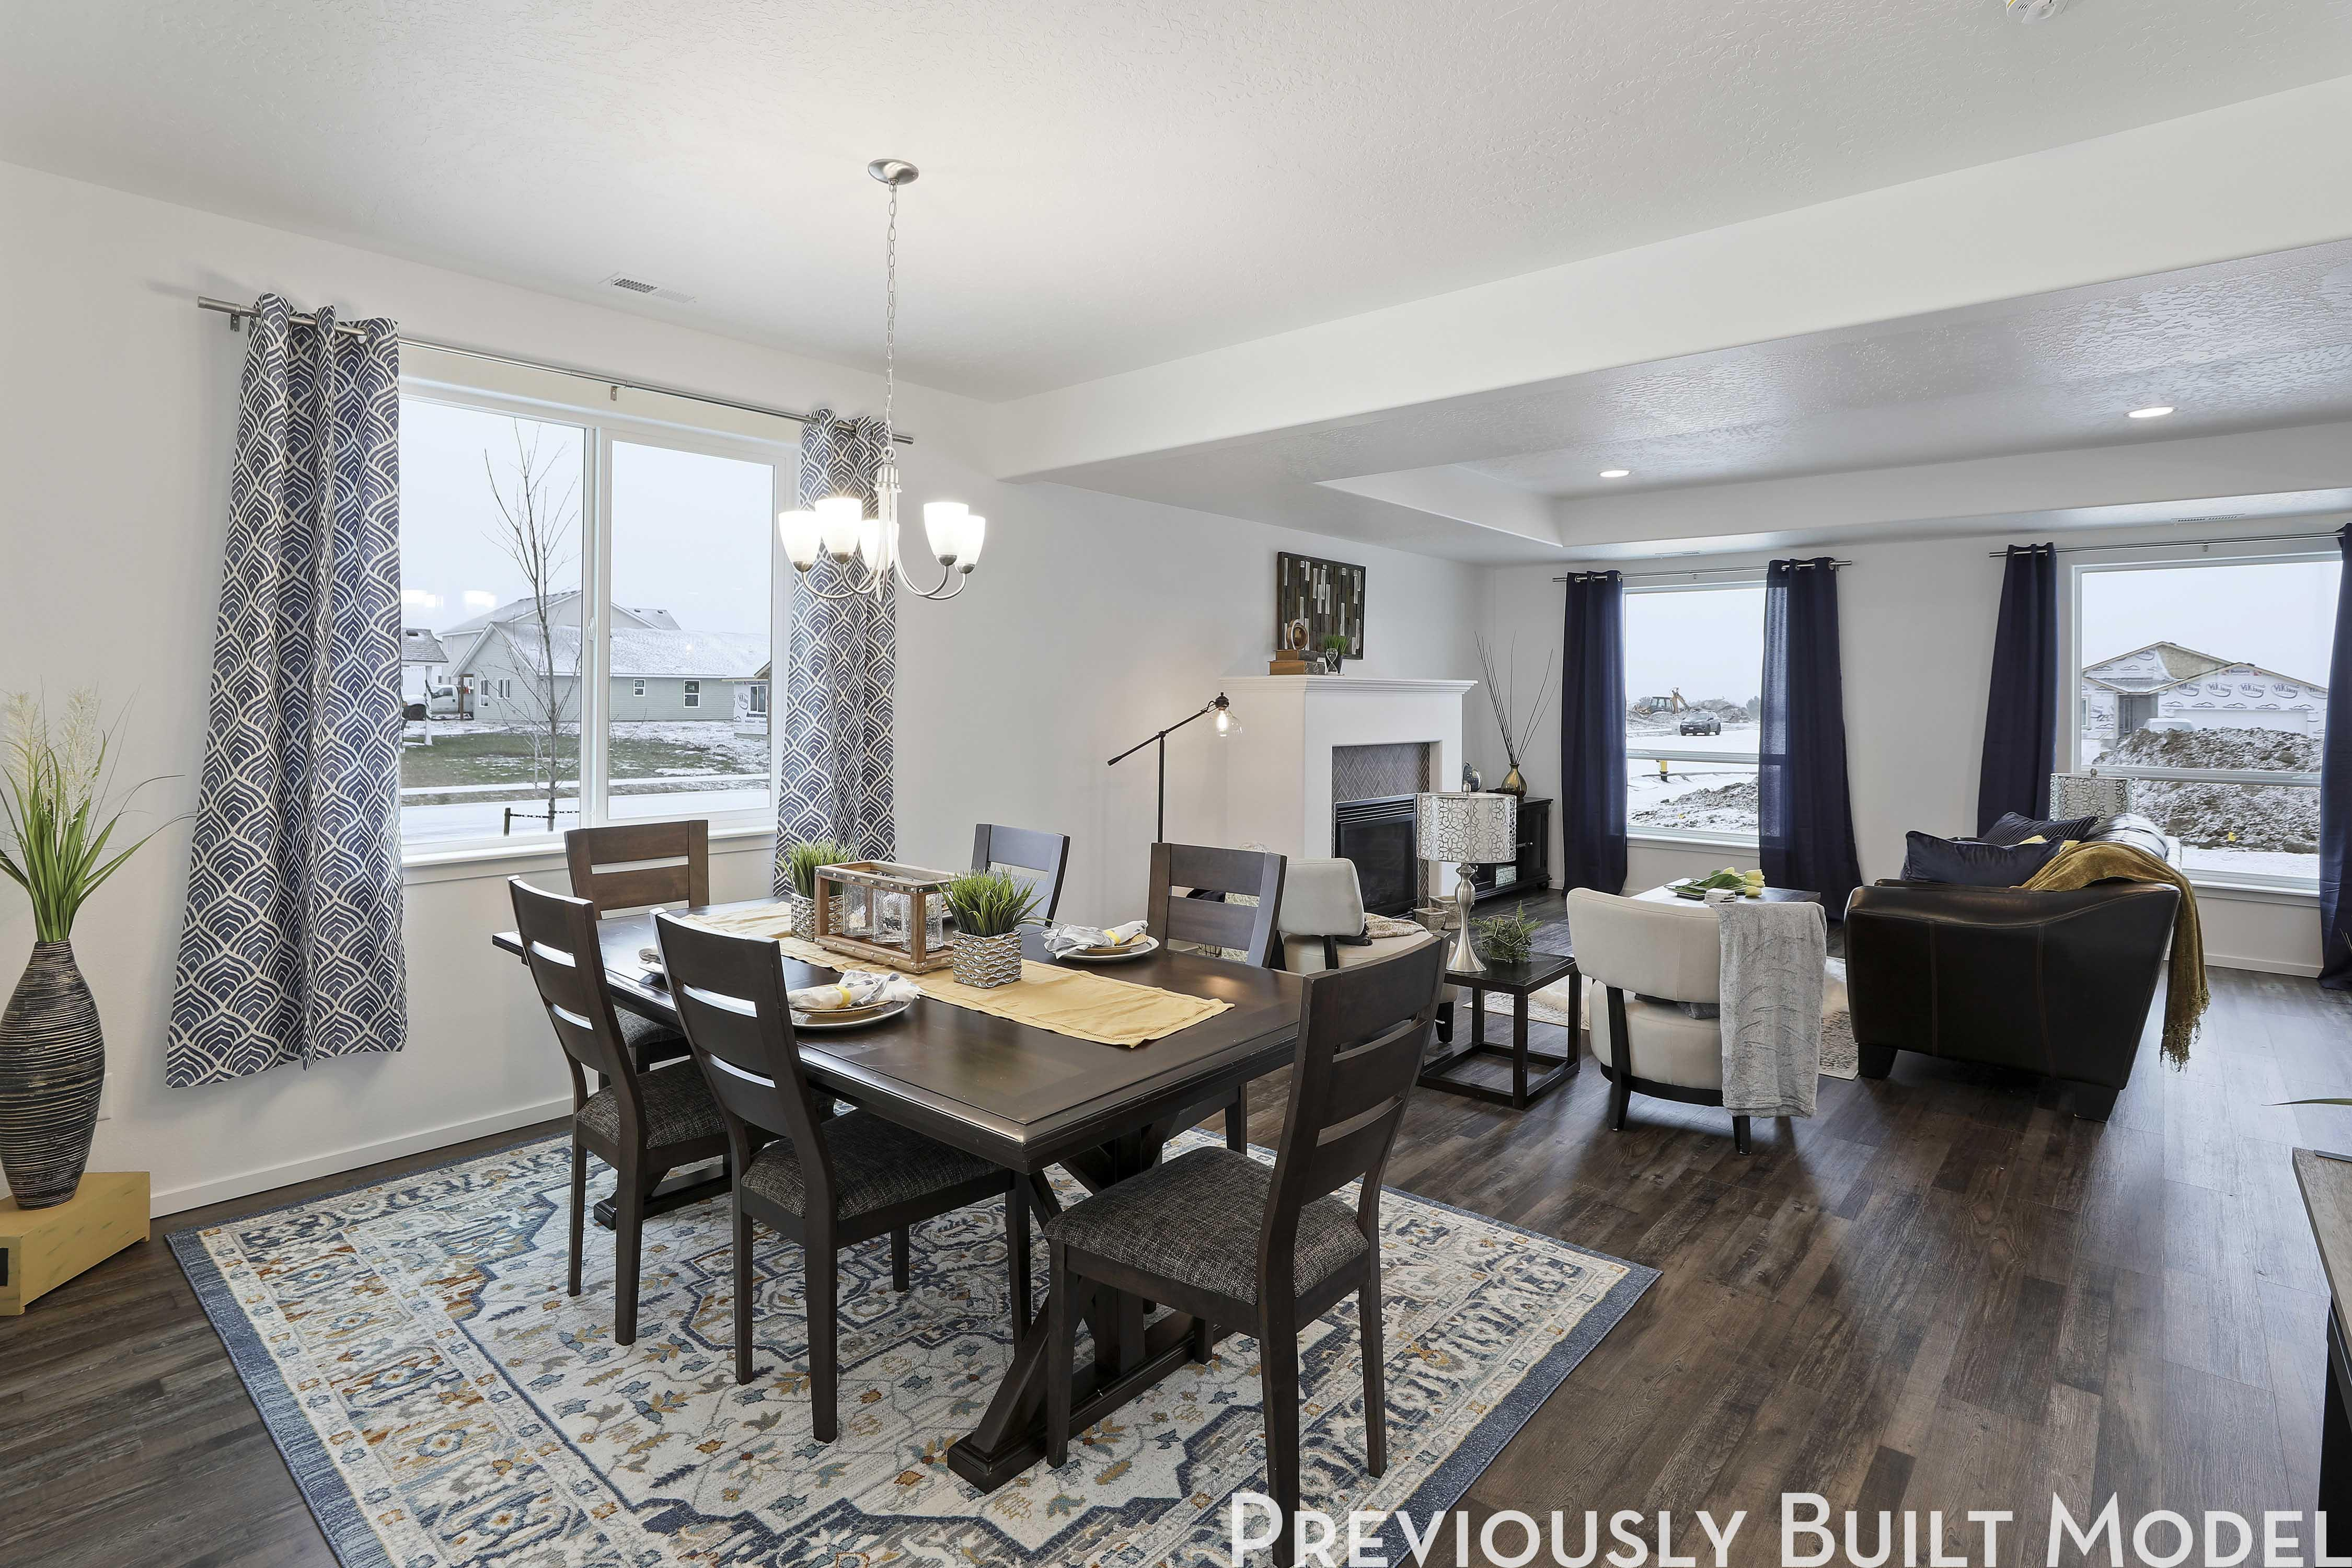 Living Area featured in The Windsor By RYN Built Homes in Spokane-Couer d Alene, WA